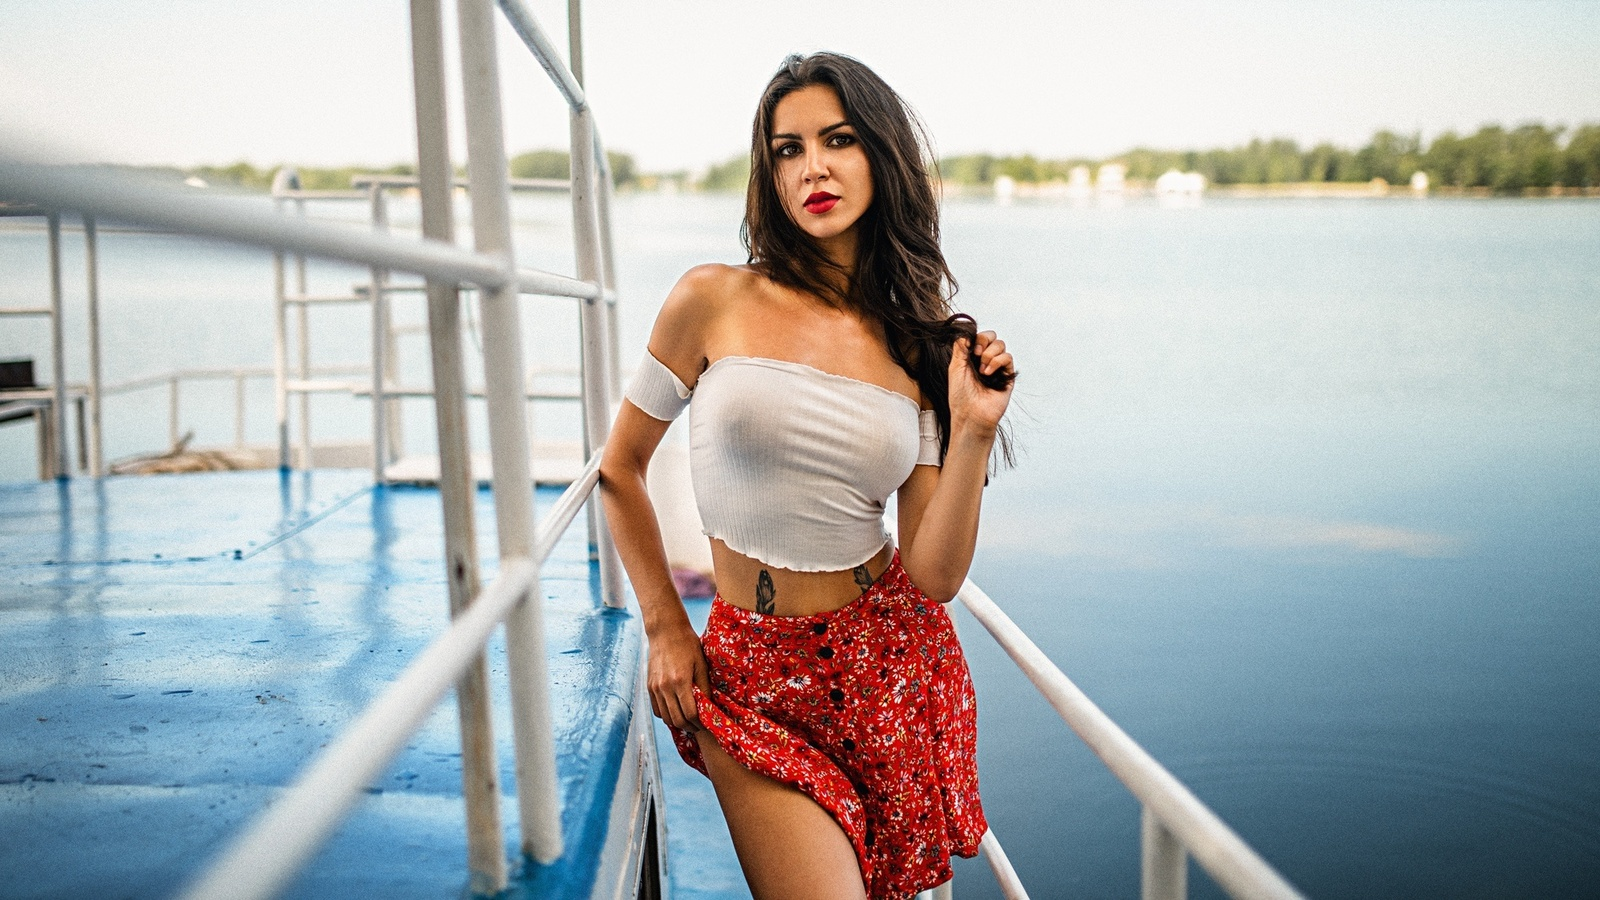 women, tattoo, portrait, skirt, red lipstick, long hair, women outdoors, bare shoulders, water, boat